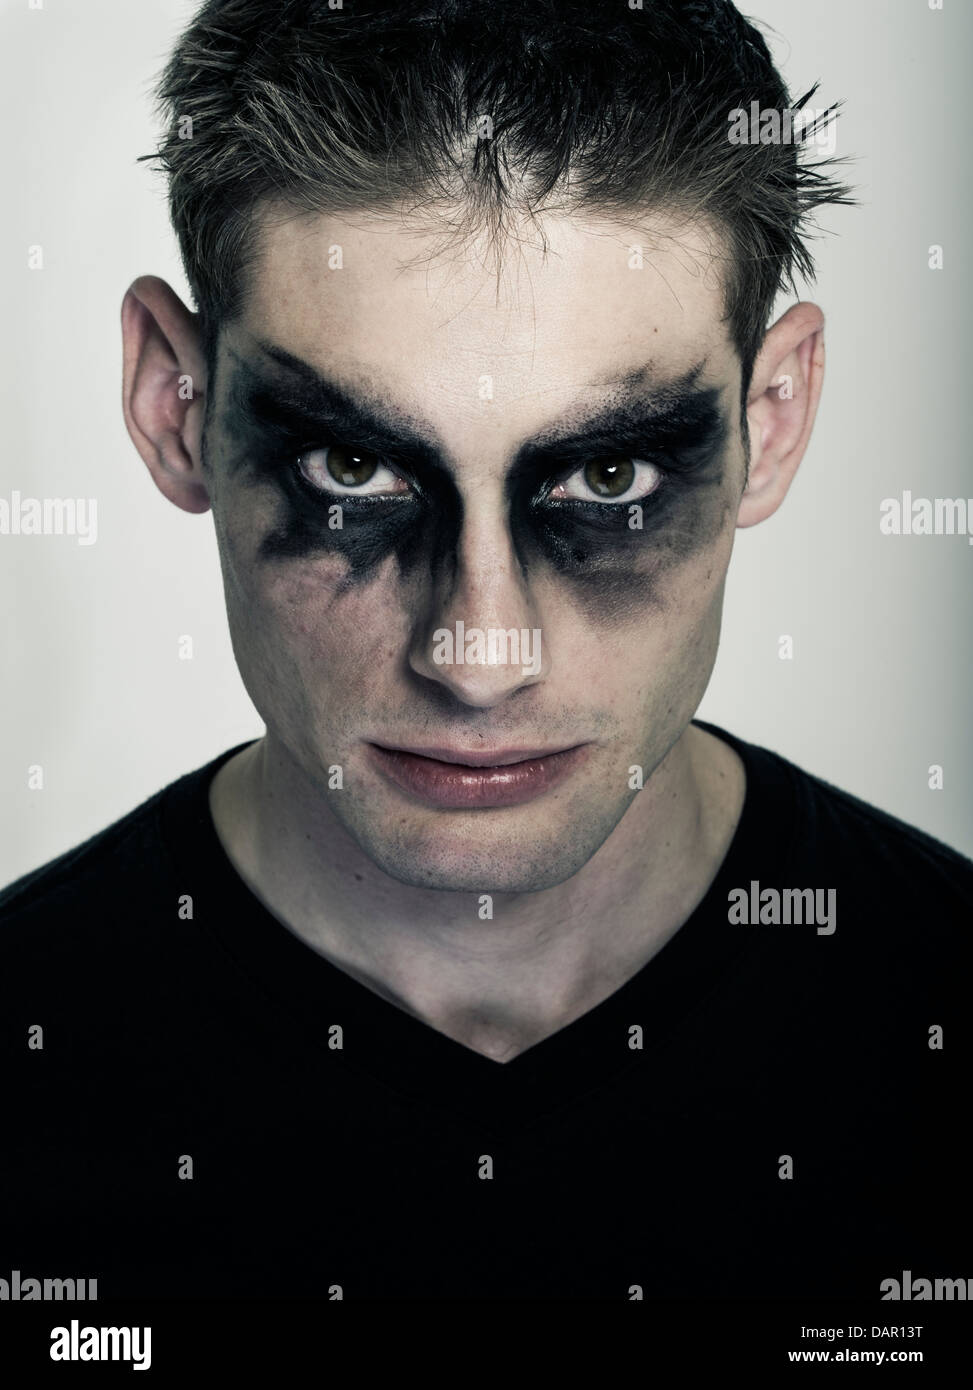 male goth man in goth makeup punk subculture stock